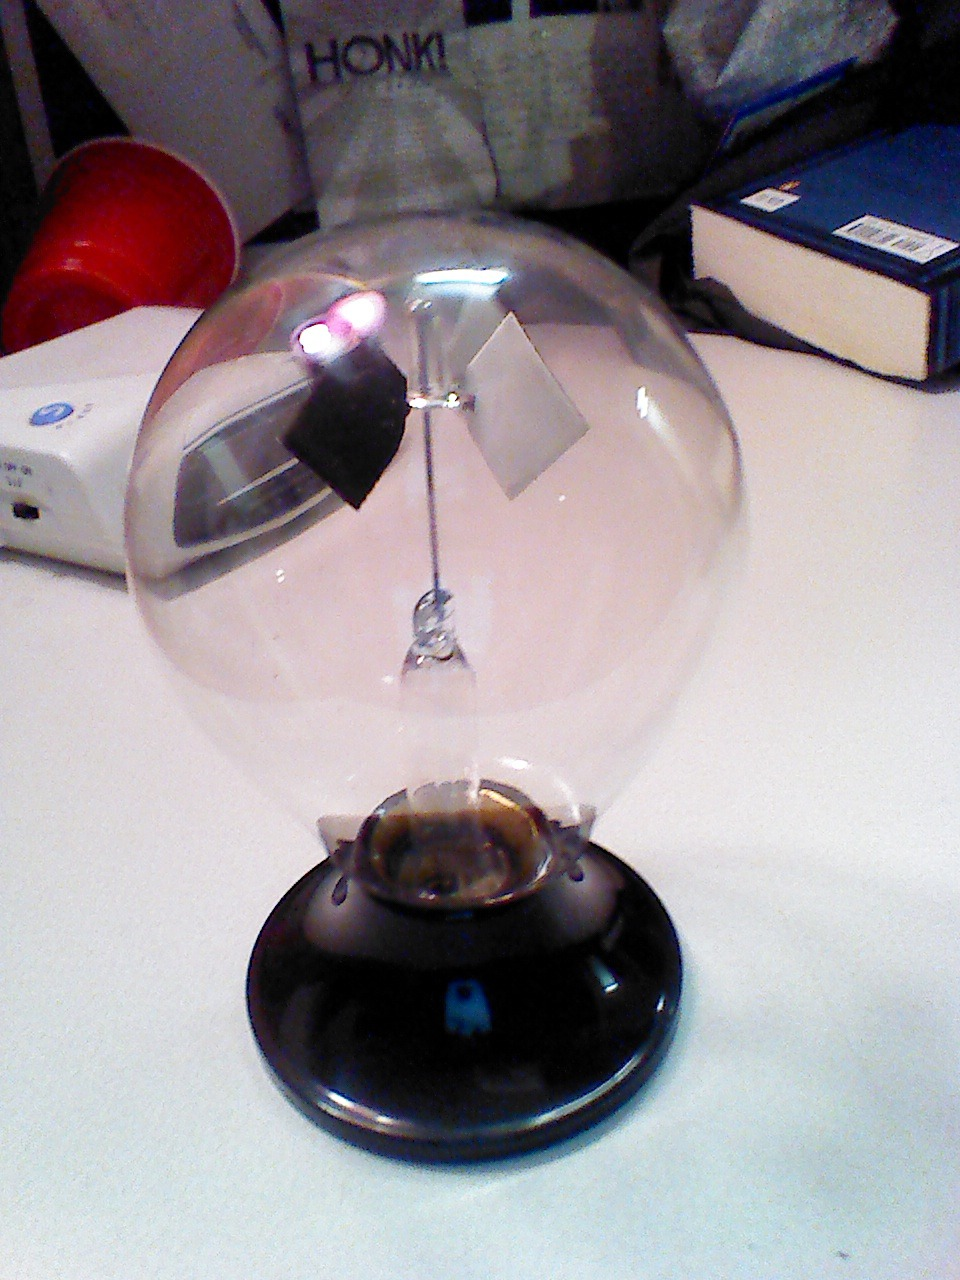 normalmodes:  Here's a cool toy. This radiometer spins when exposed to a light source. It's tempting to think that photons are imparting the spinning force on the vane directly. Photons do exert force - though massless, they have intrinsic momentum - but that radiation pressure is far too weak to move something like this. What's really happening: the black panels absorb energy from the incident light and heat up. The gas (air I presume) molecules knocking about actually kick off from those panels more strongly due to this heat. The vane thus turns only in then direction of the white panels, which absorb much less energy and thus transfer less to colliding particles. It is the kinetic force of the air particles responsible, not the electromagnetic force of the photons. I'll post a video when I get the chance!